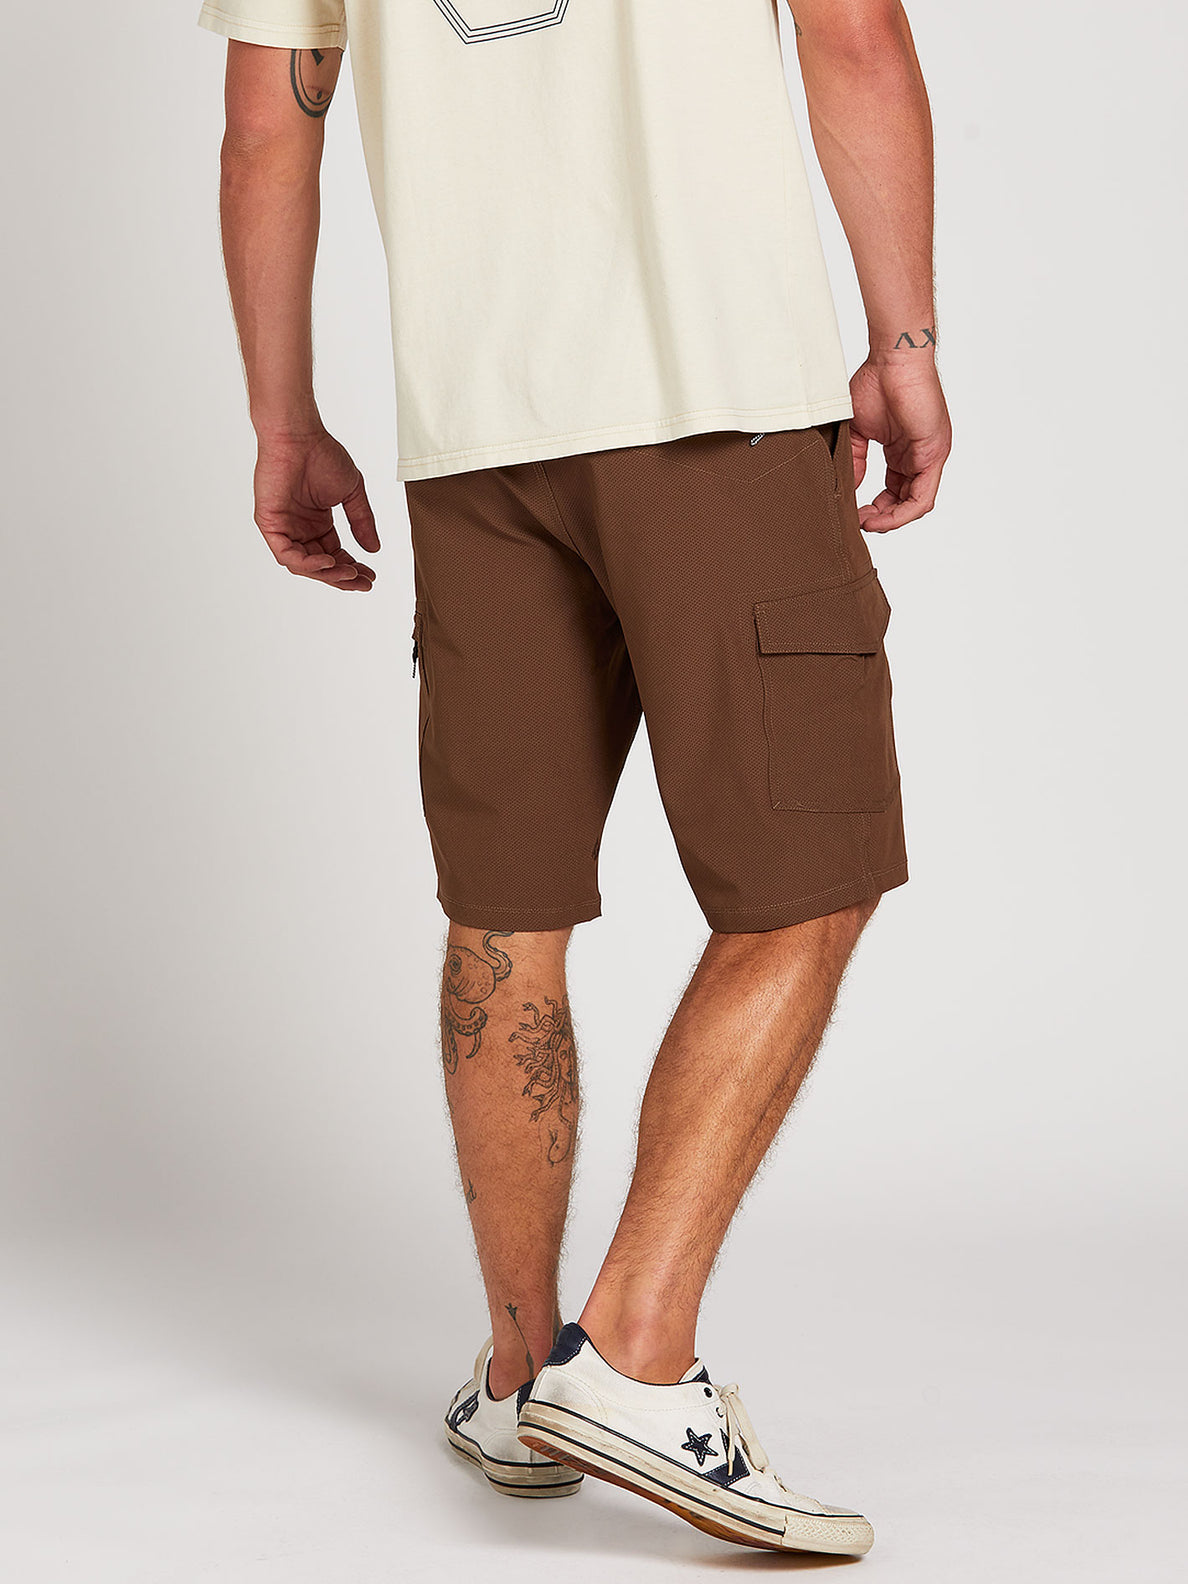 Surf N' Turf Dry Cargo Hybrid Shorts - Vintage Brown (A3212004_VBN) [2]